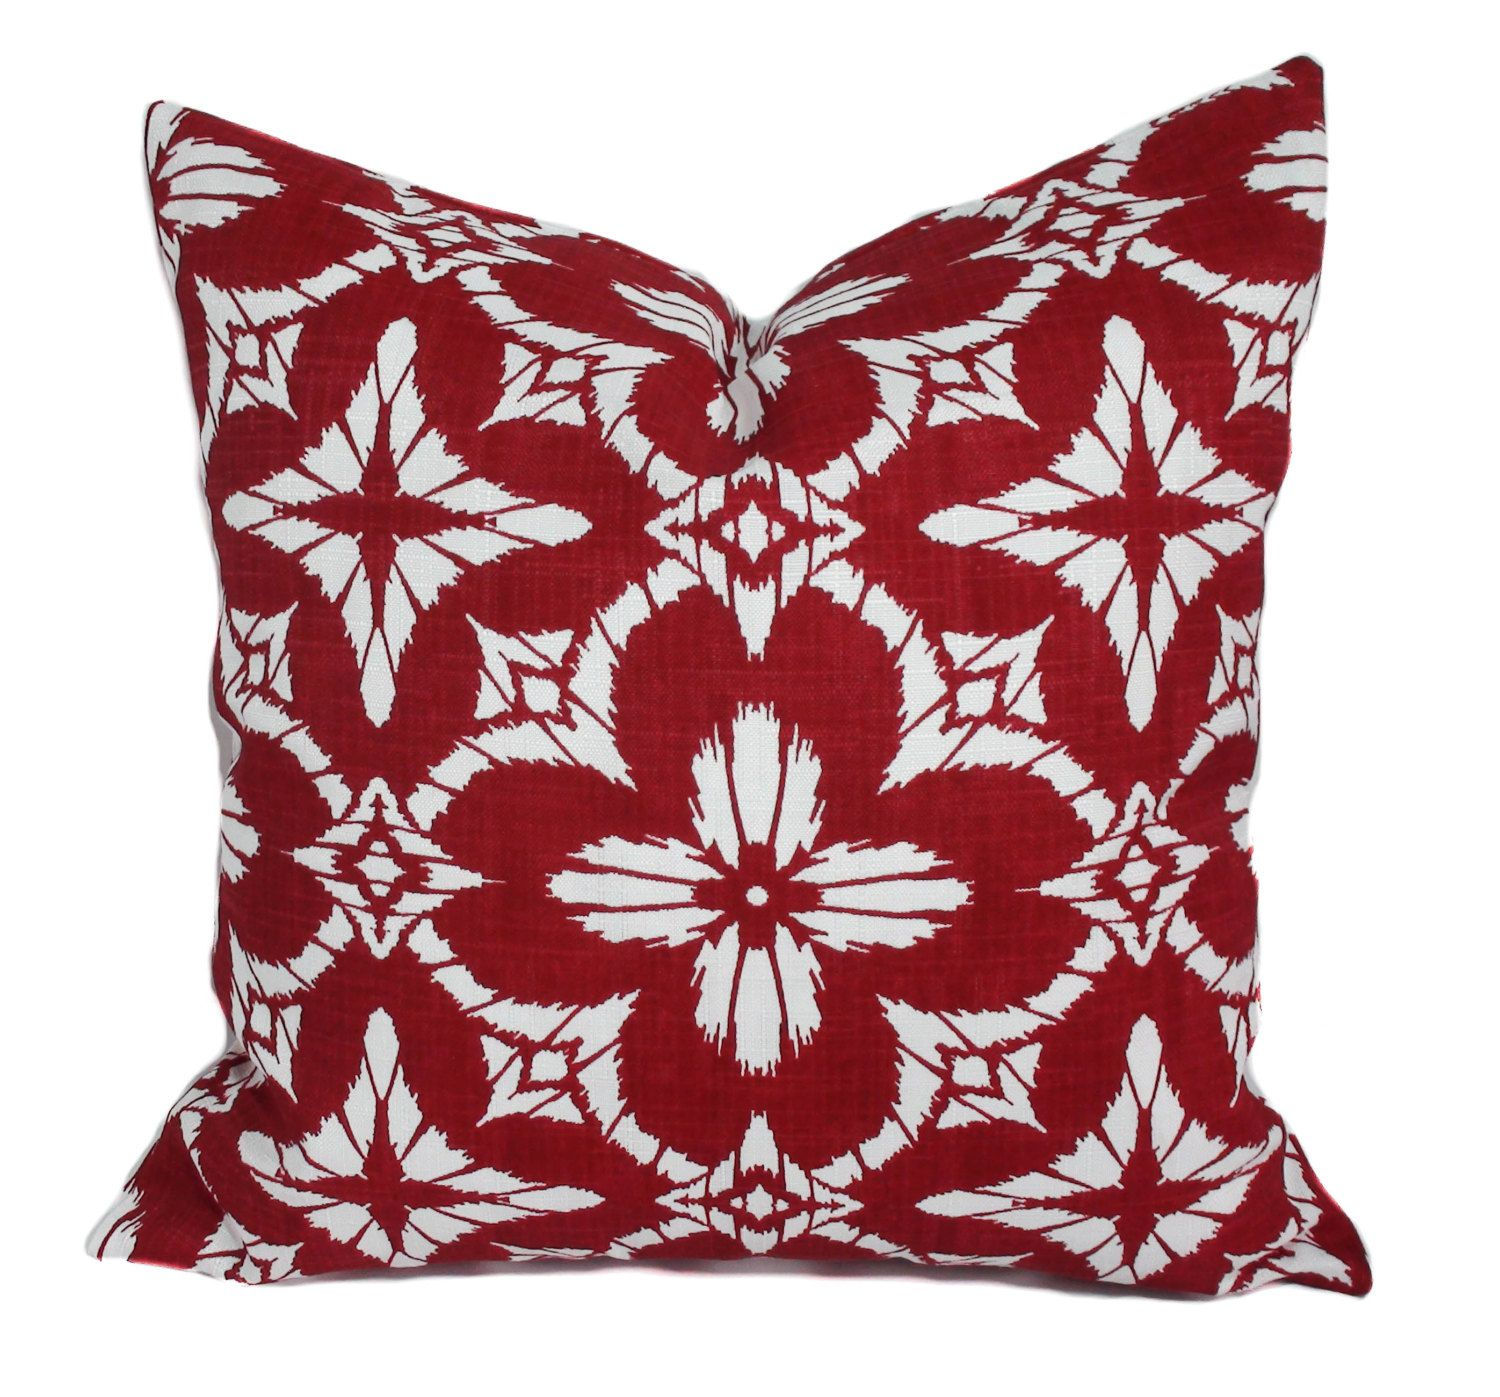 Outdoor Christmas pillow cover, 15x15, Outdoor holiday pillows ...